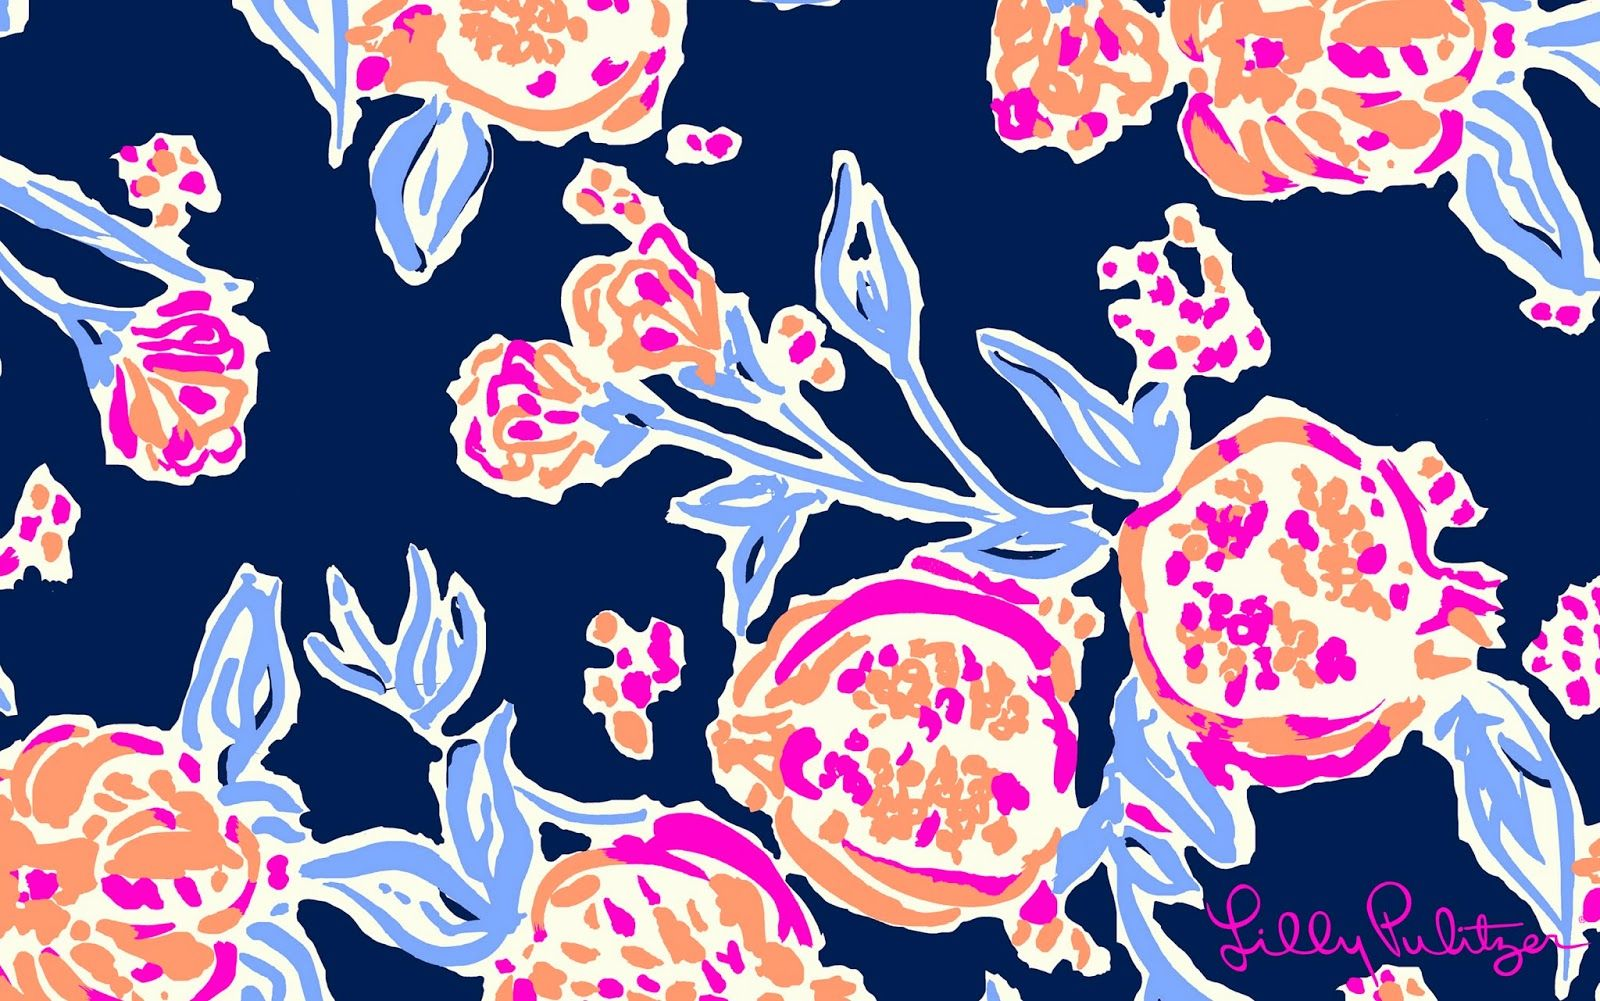 Fall Southern Prep Wallpapers Lily Pulitzer Laptop Background Love It Mi Telele